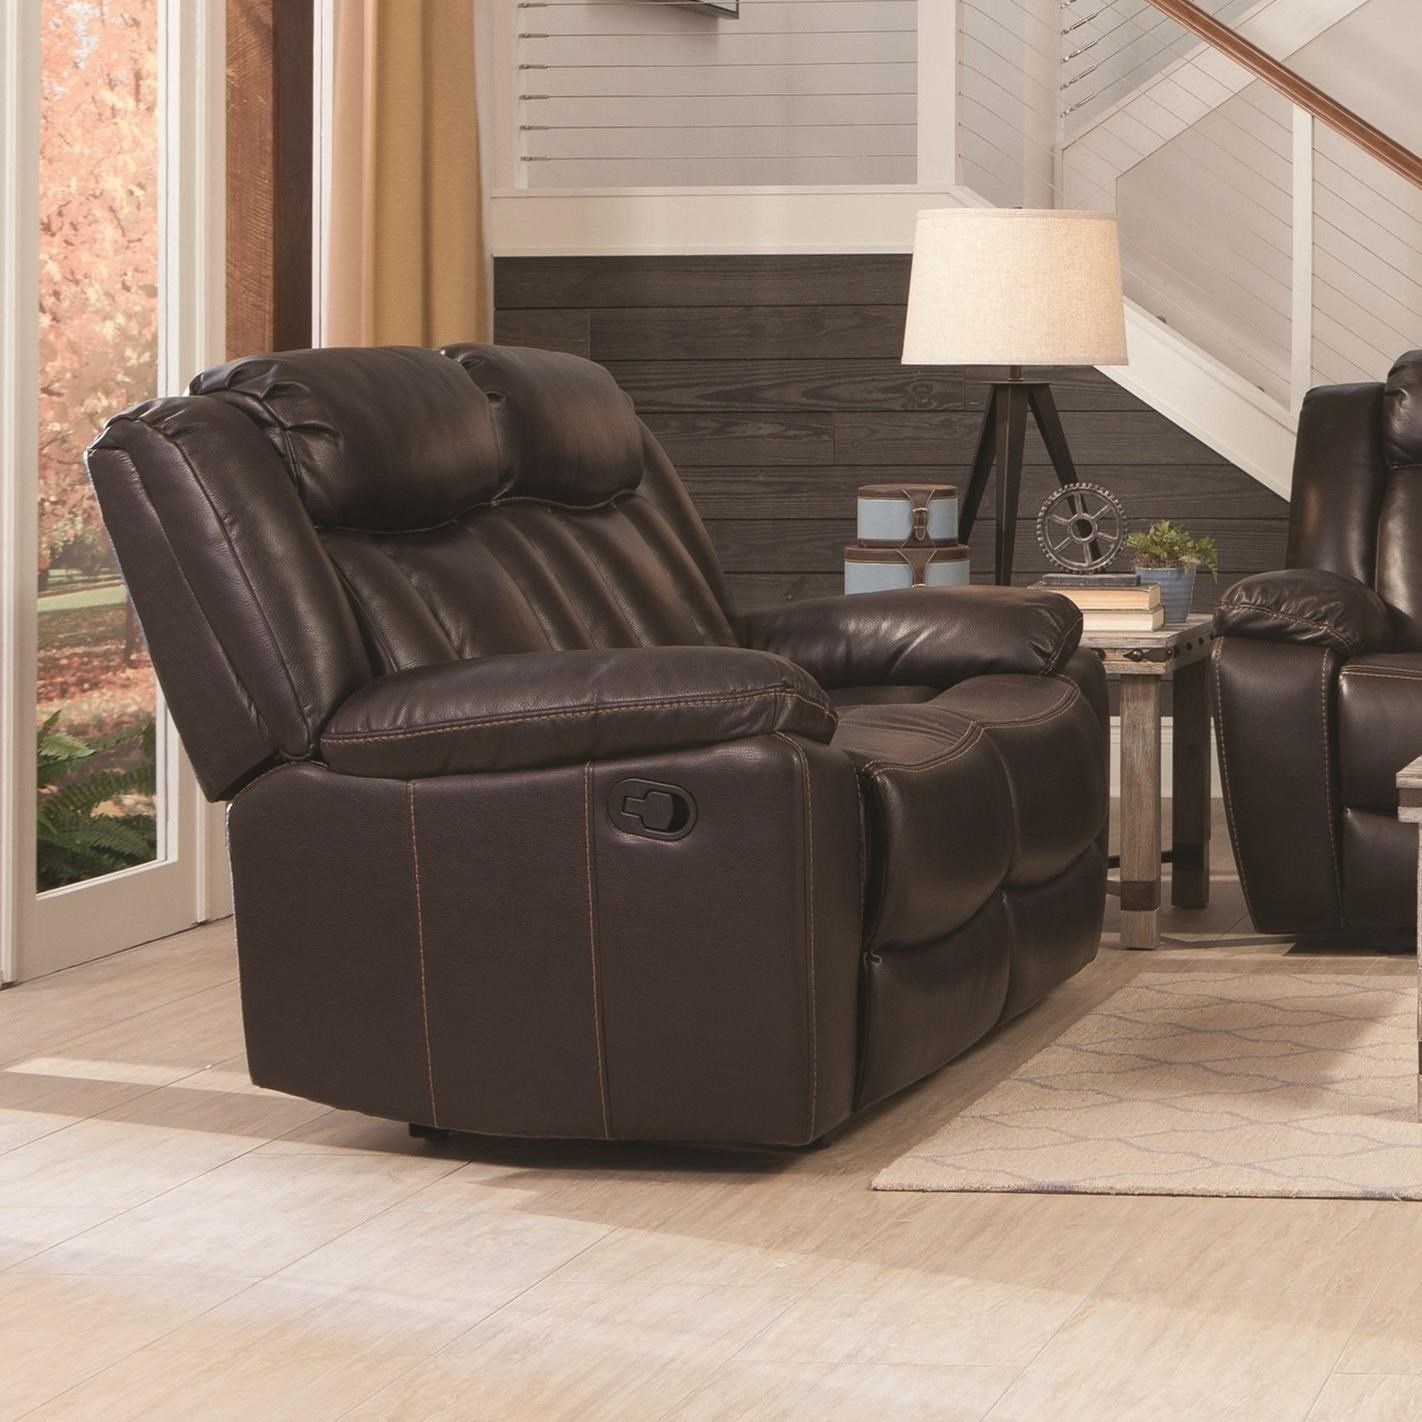 Elegant Coaster Bevington Casual Motion Loveseat With Channeled Backrest